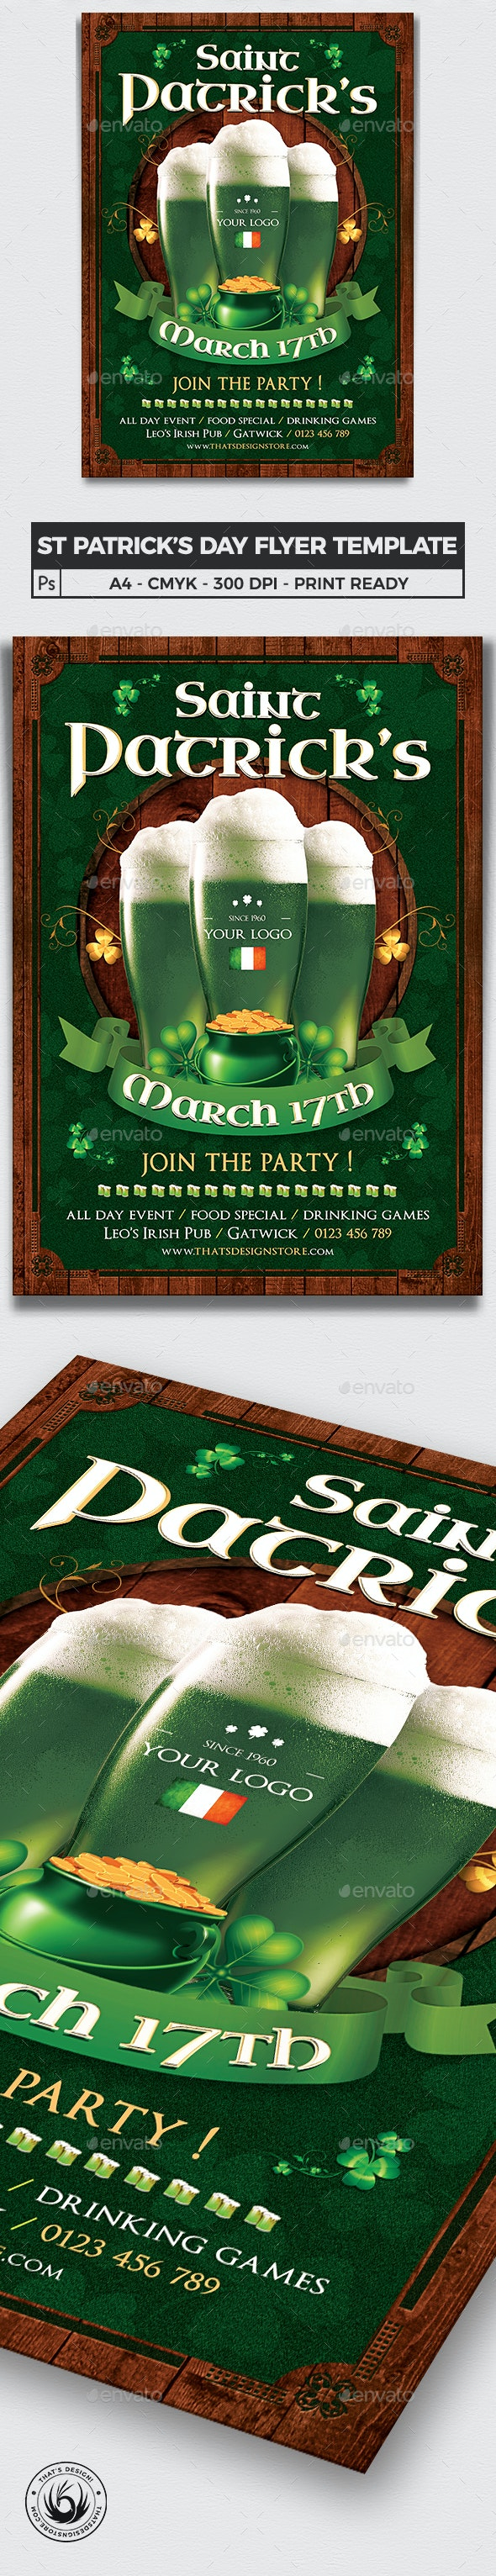 Saint Patricks Day Flyer Template V8 - Clubs & Parties Events